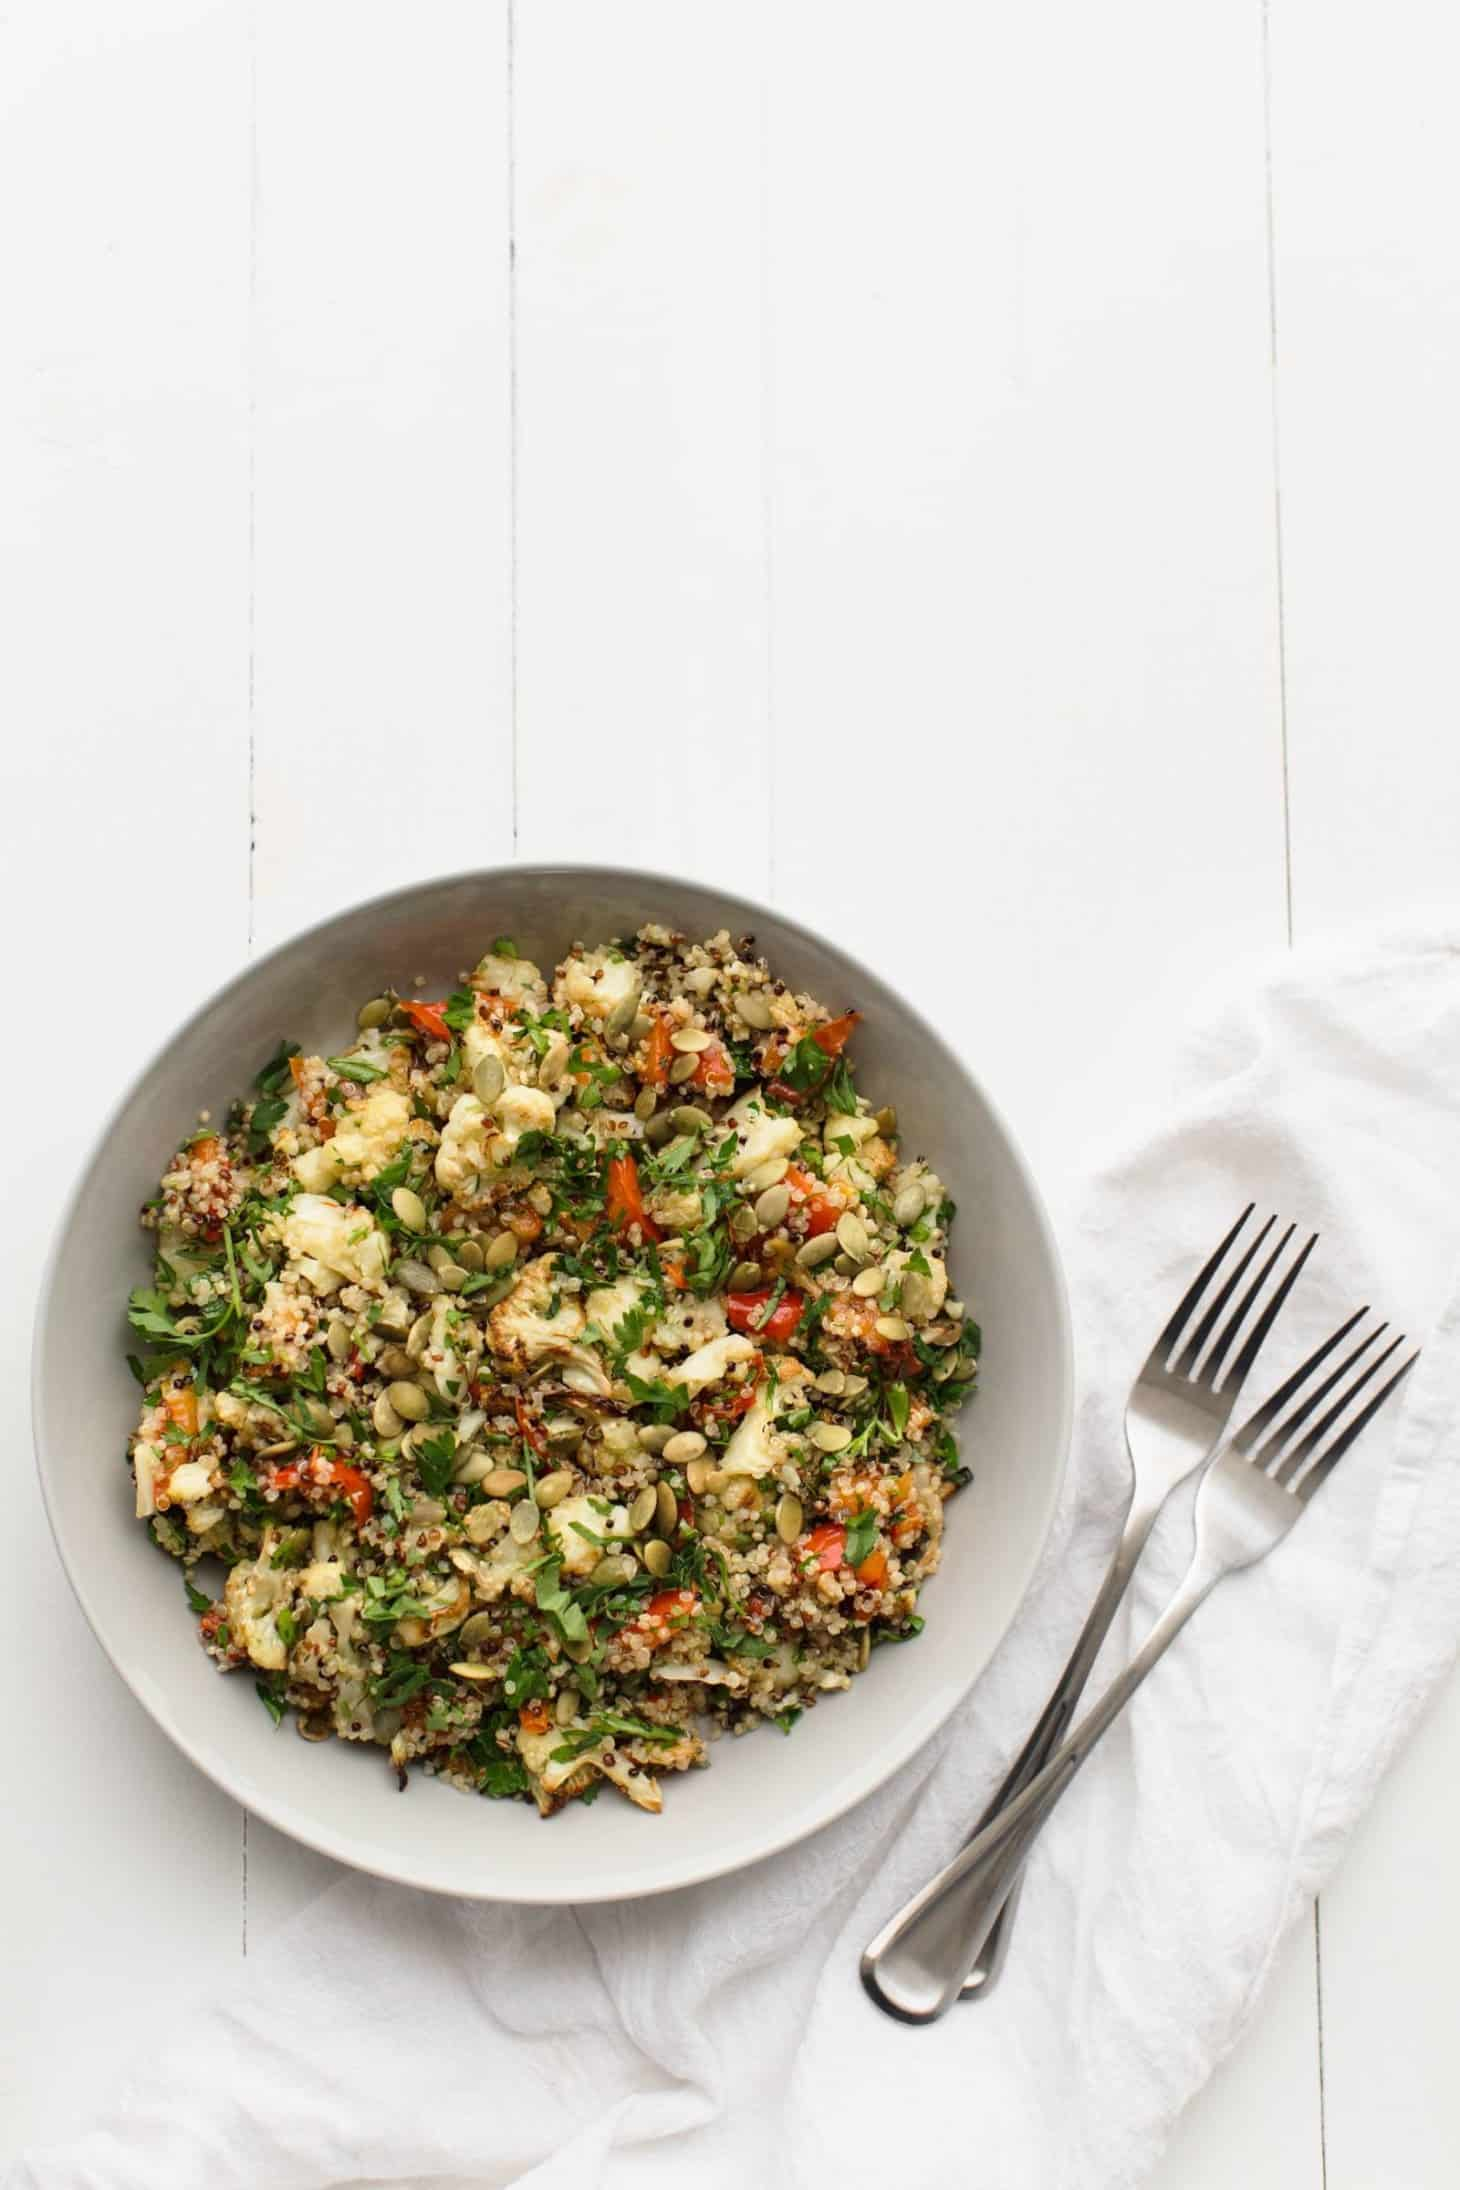 Caramelized Cauliflower Salad with Quinoa